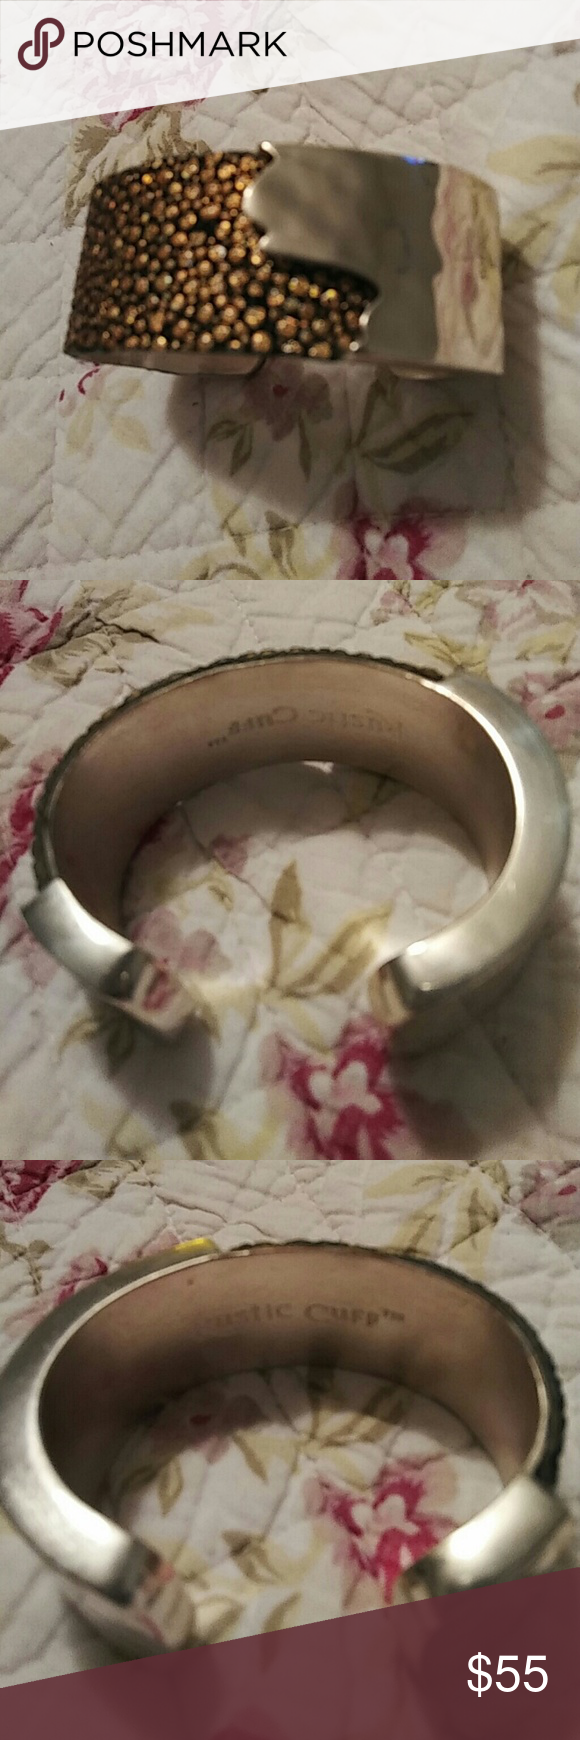 Rustic Cuff Original Gold Black & Silver! Barely worn and super original and rarely made! Very adjustable! Please let me know if you have any questions. Thank you very much! Rustic Cuff Jewelry Bracelets